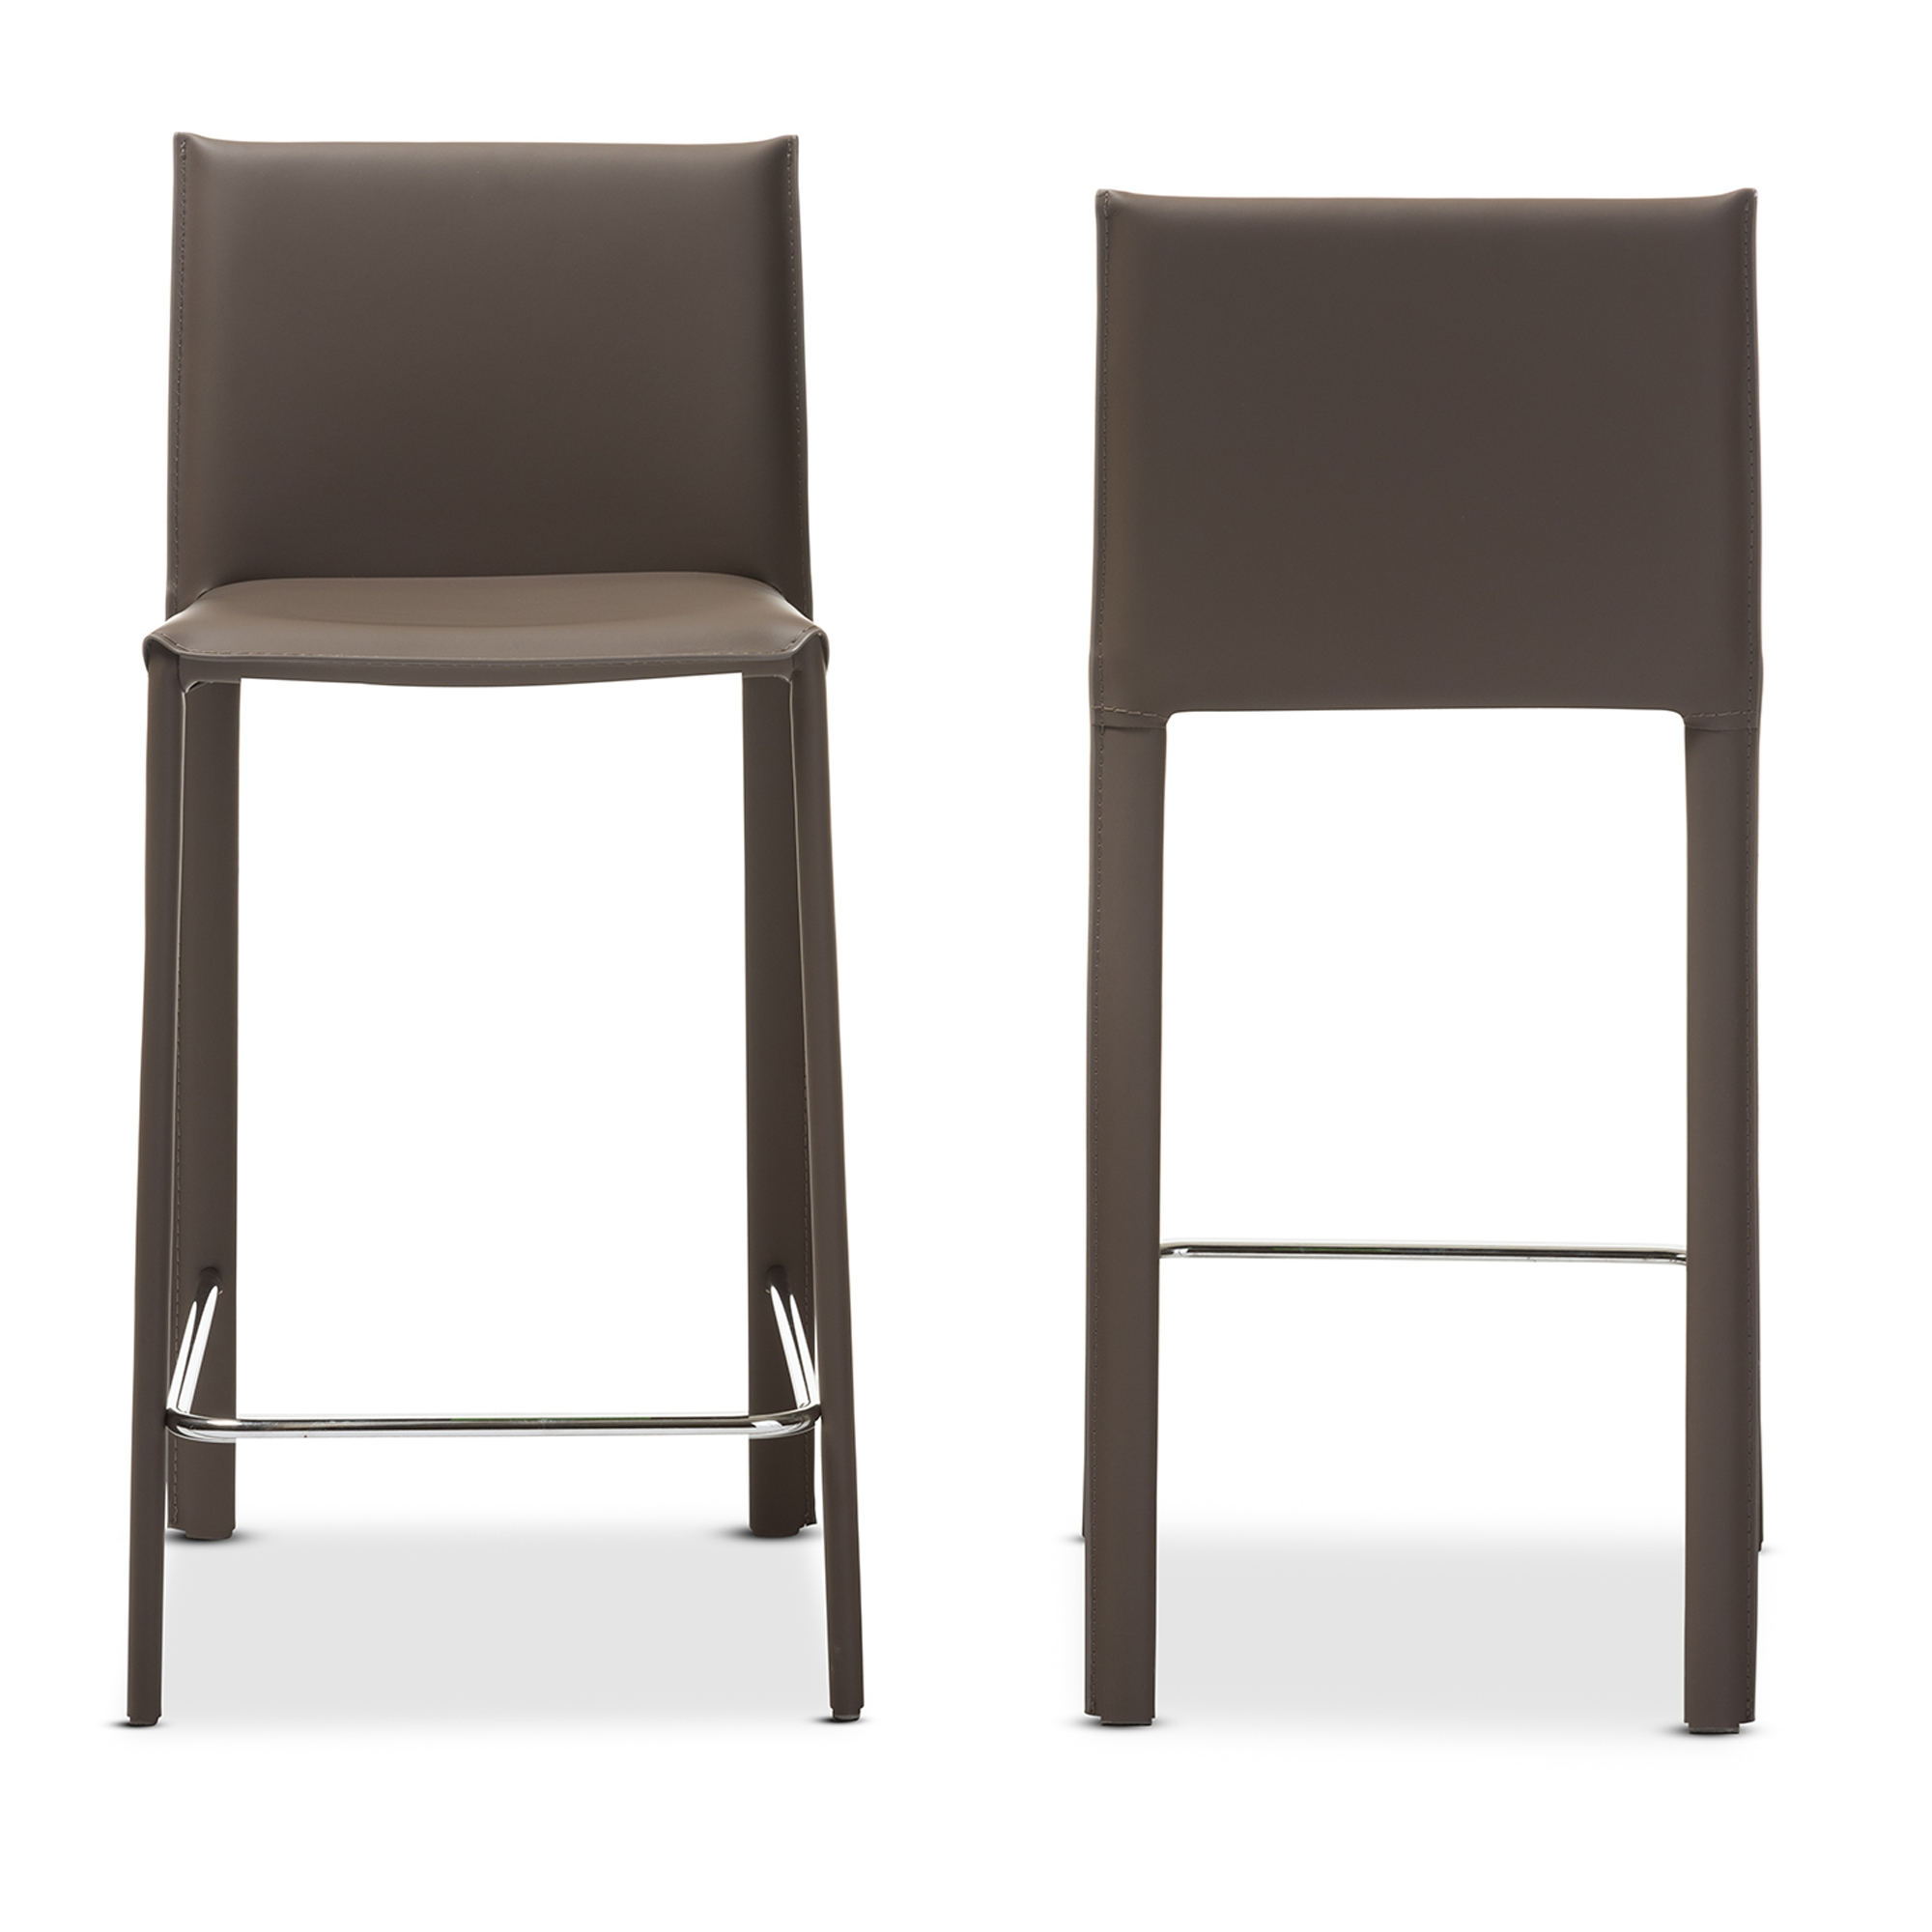 ... Baxton Studio Crawford Modern and Contemporary Taupe Leather Upholstered Counter Height Stool - BSOALC-1822A ...  sc 1 st  Baxton Studio Outlet : taupe leather bar stools - islam-shia.org